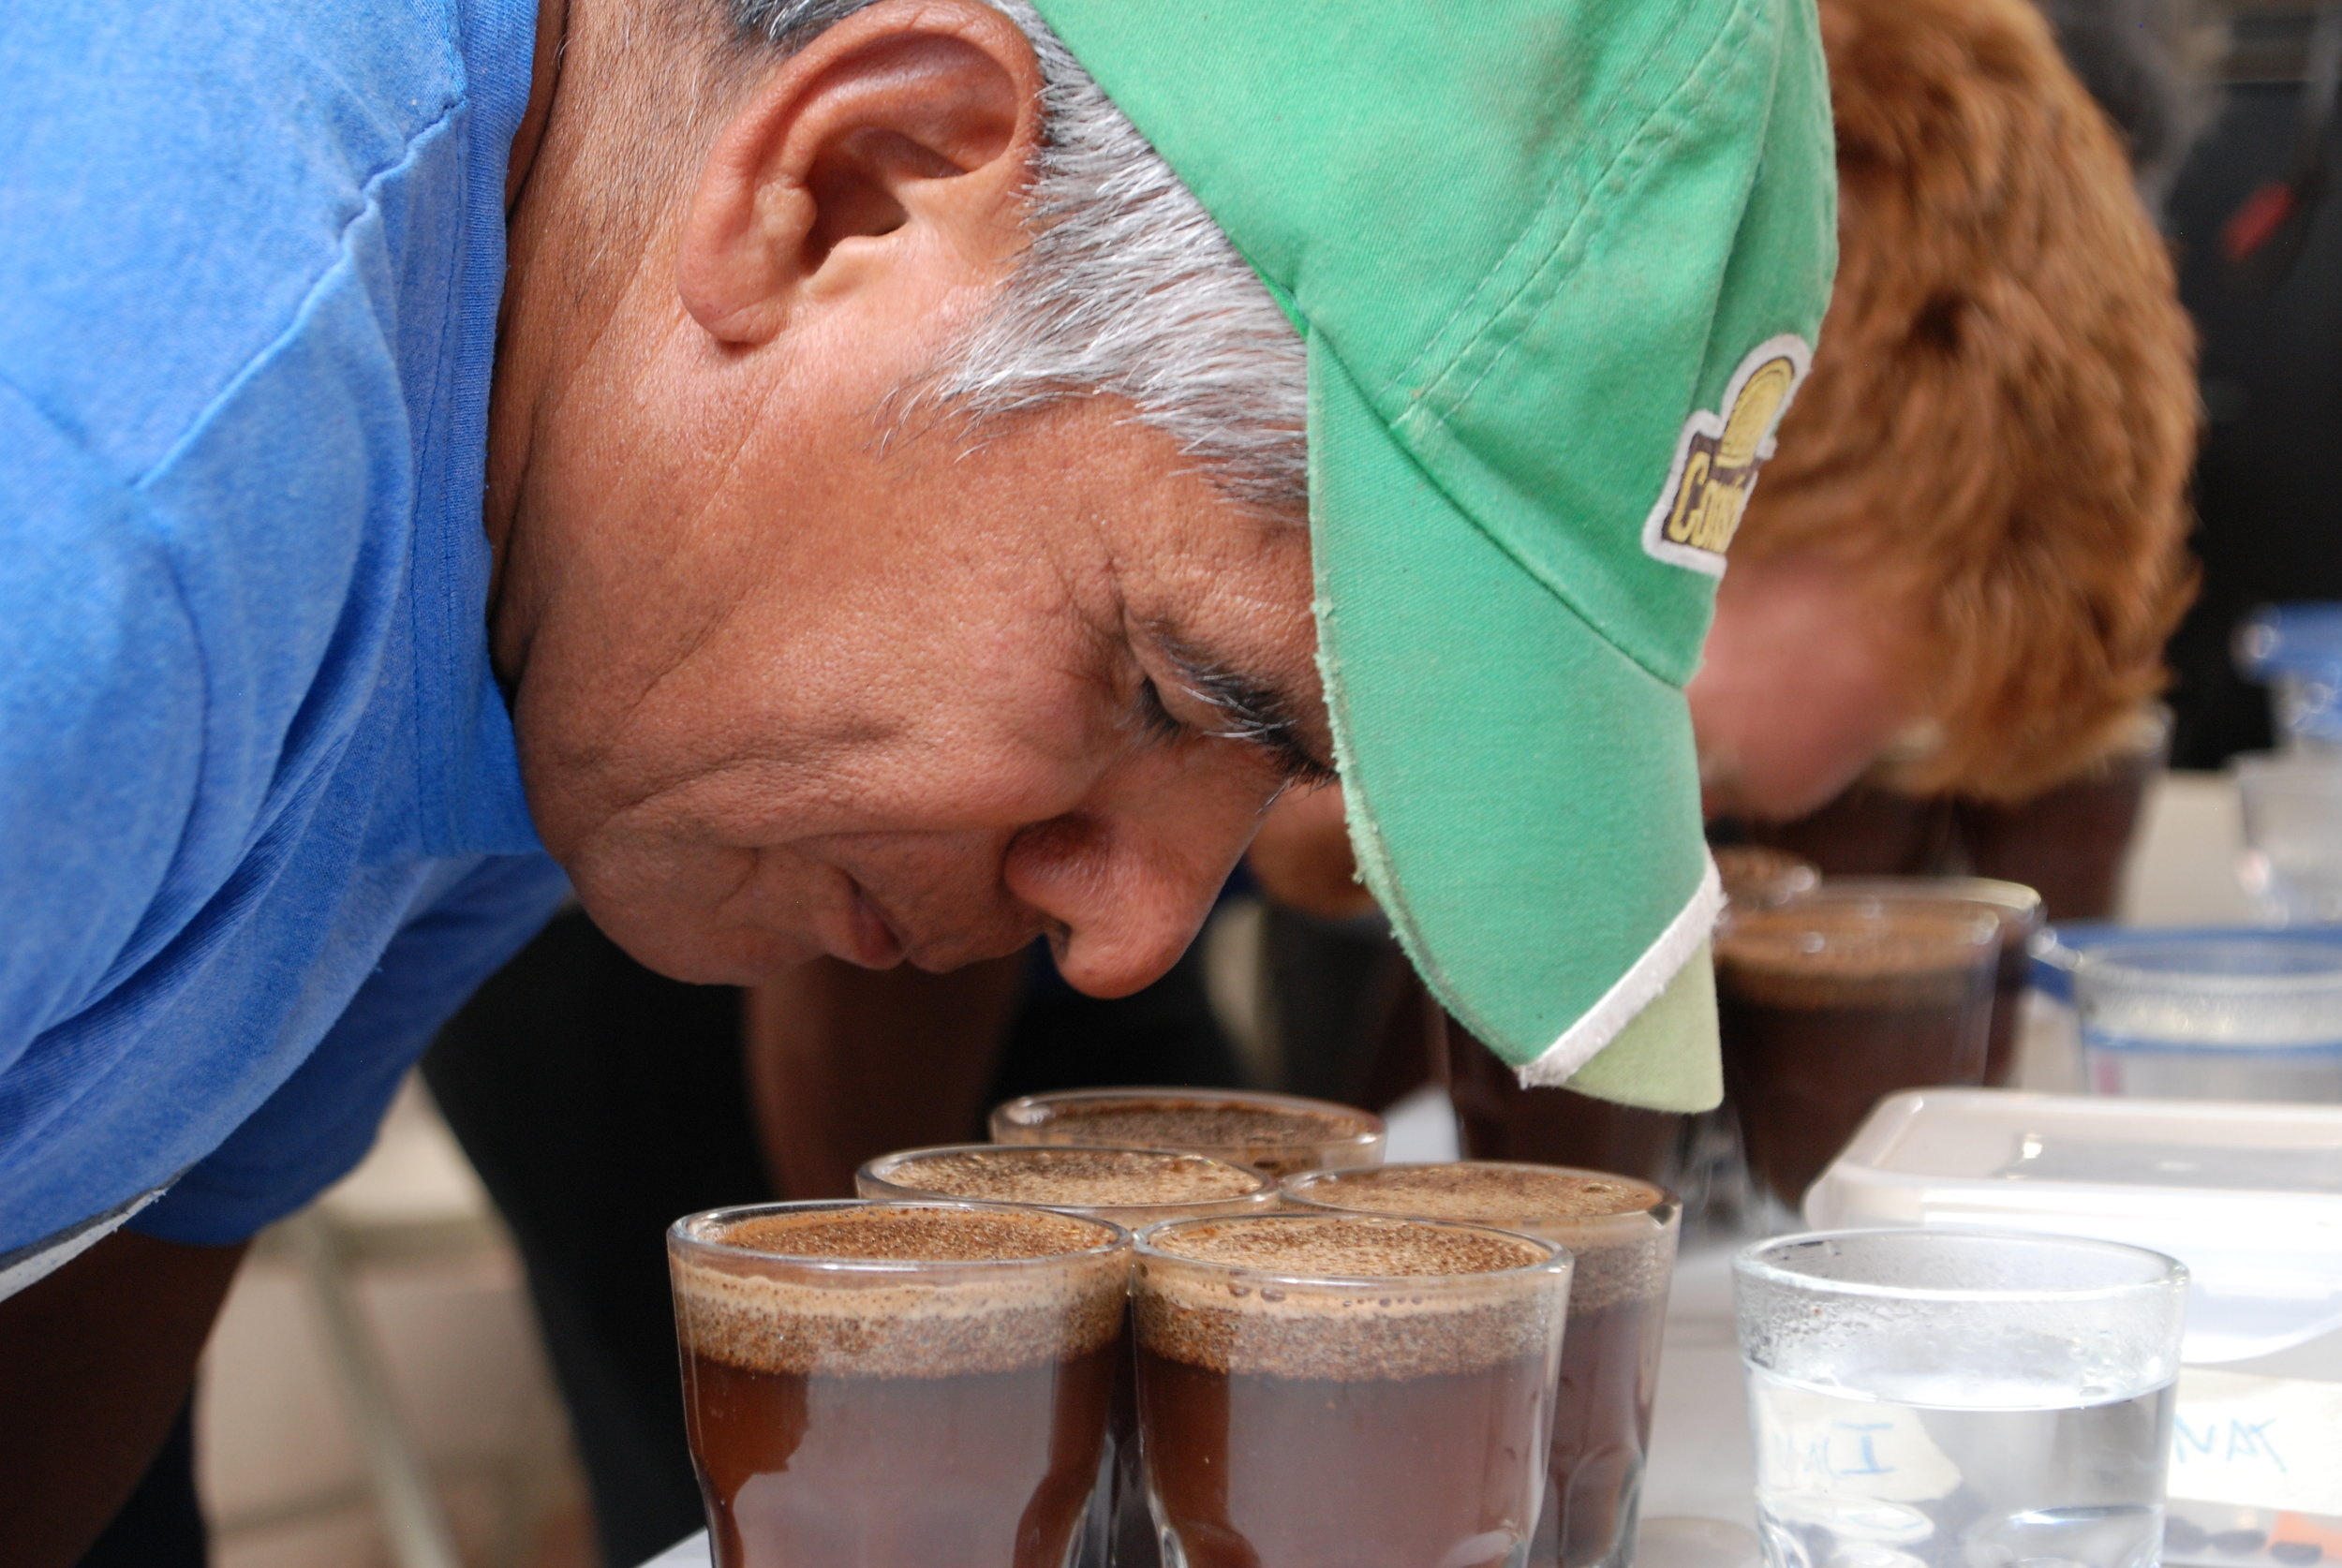 Miguel Gonzales feeling the aroma at the cupping